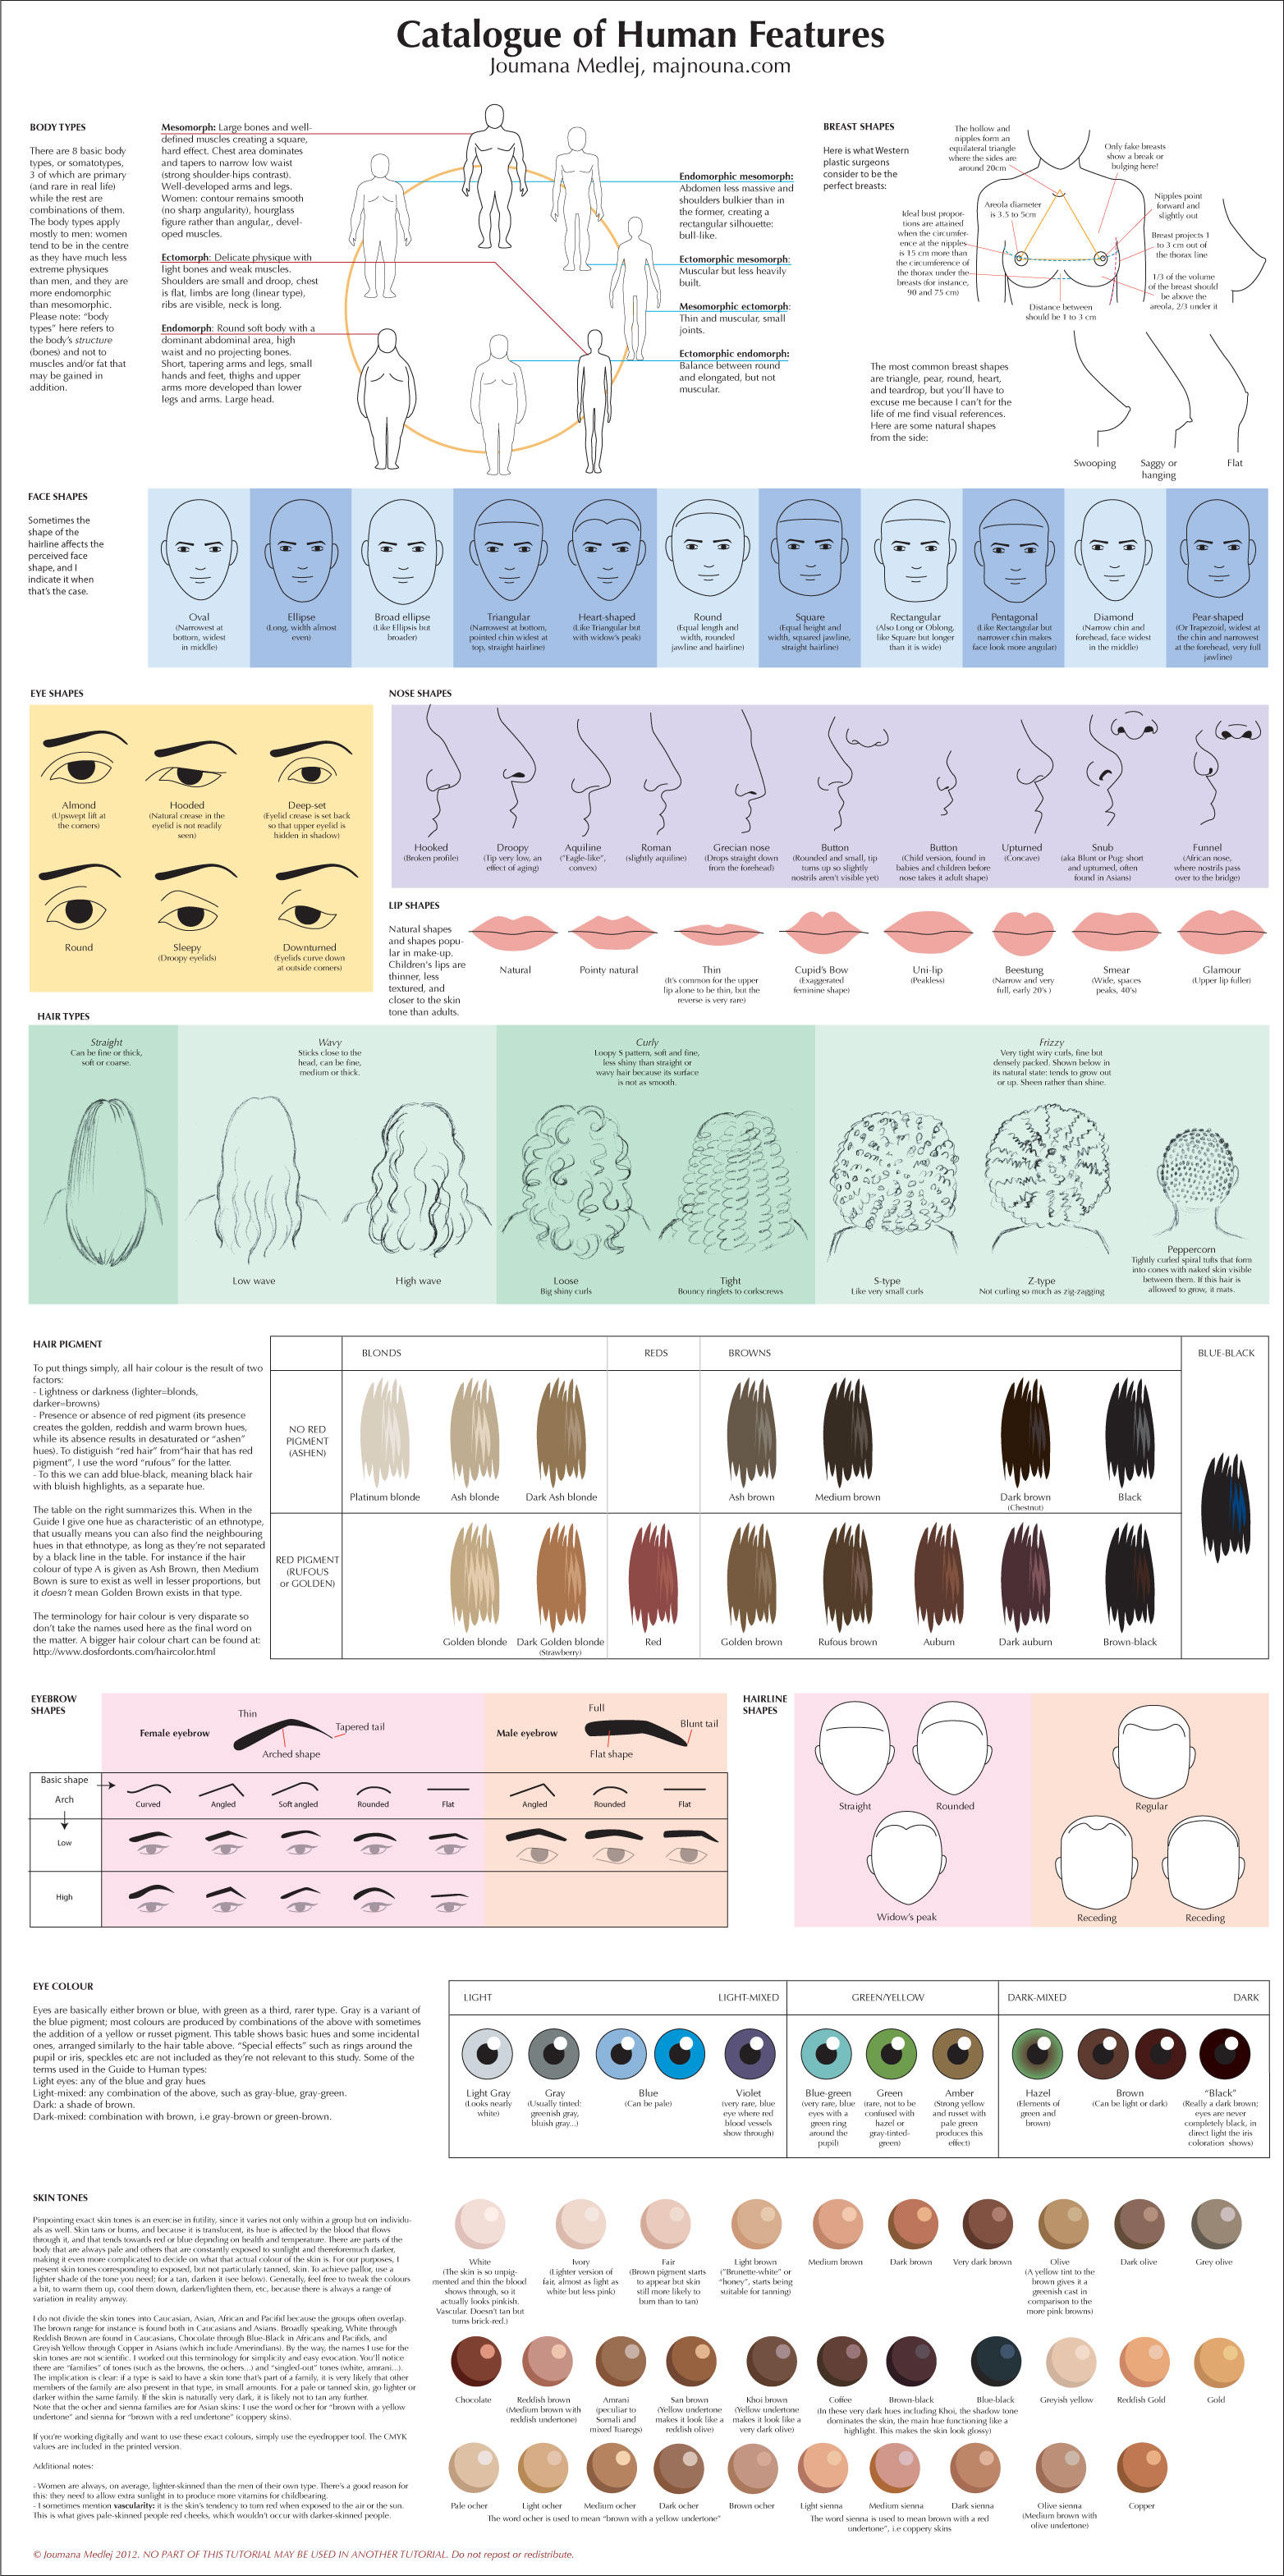 Catalogue of Human Features by Majnouna